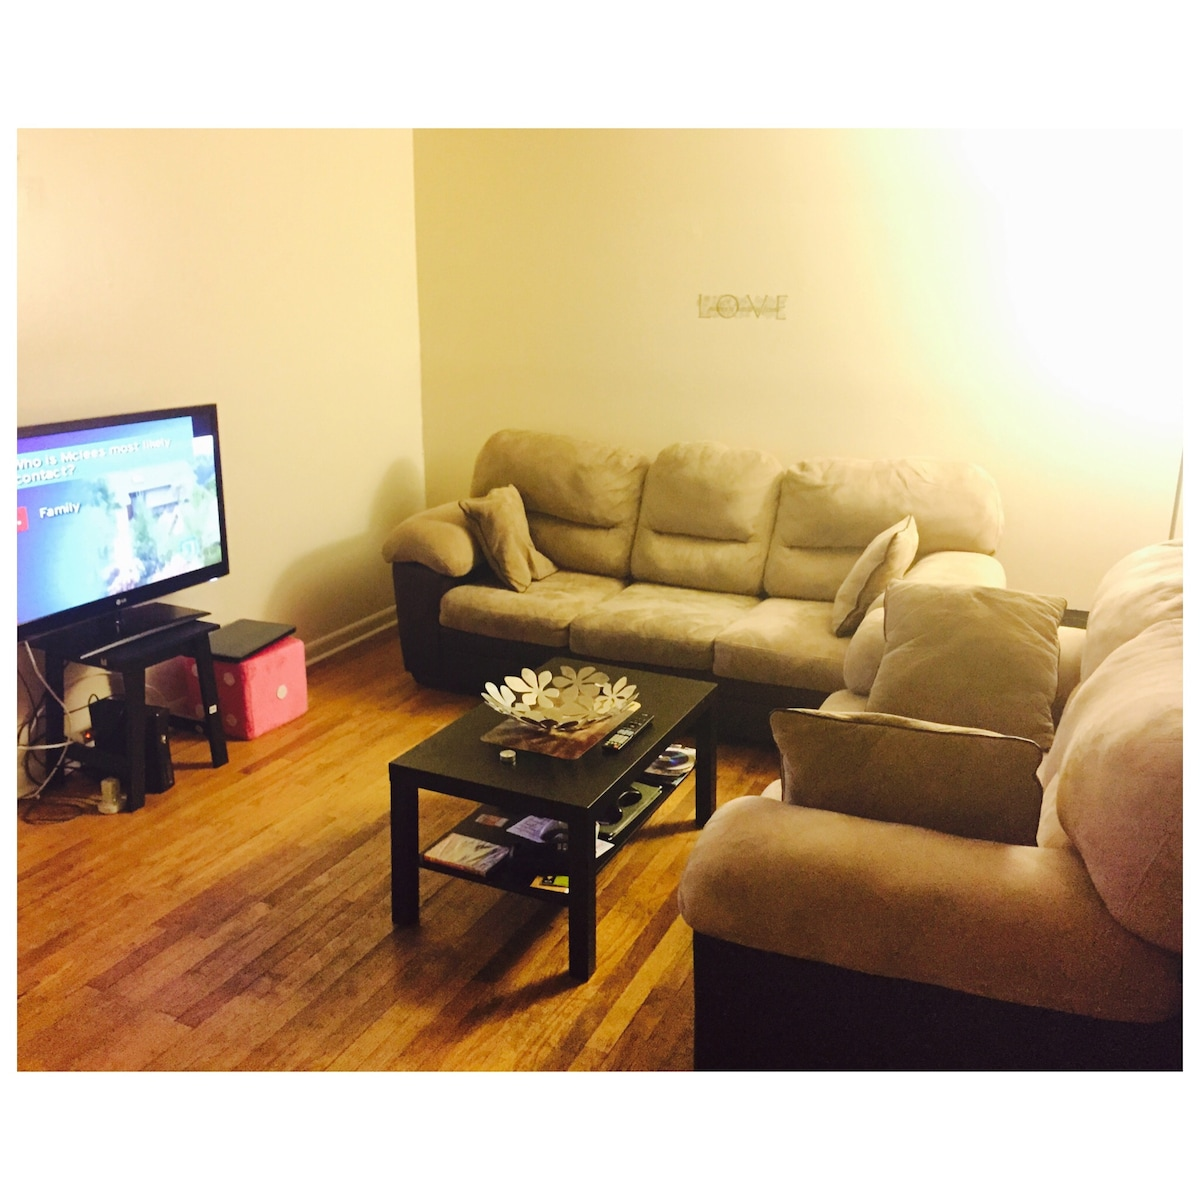 Large 1 bd in cozy apt 5 min to Nyc